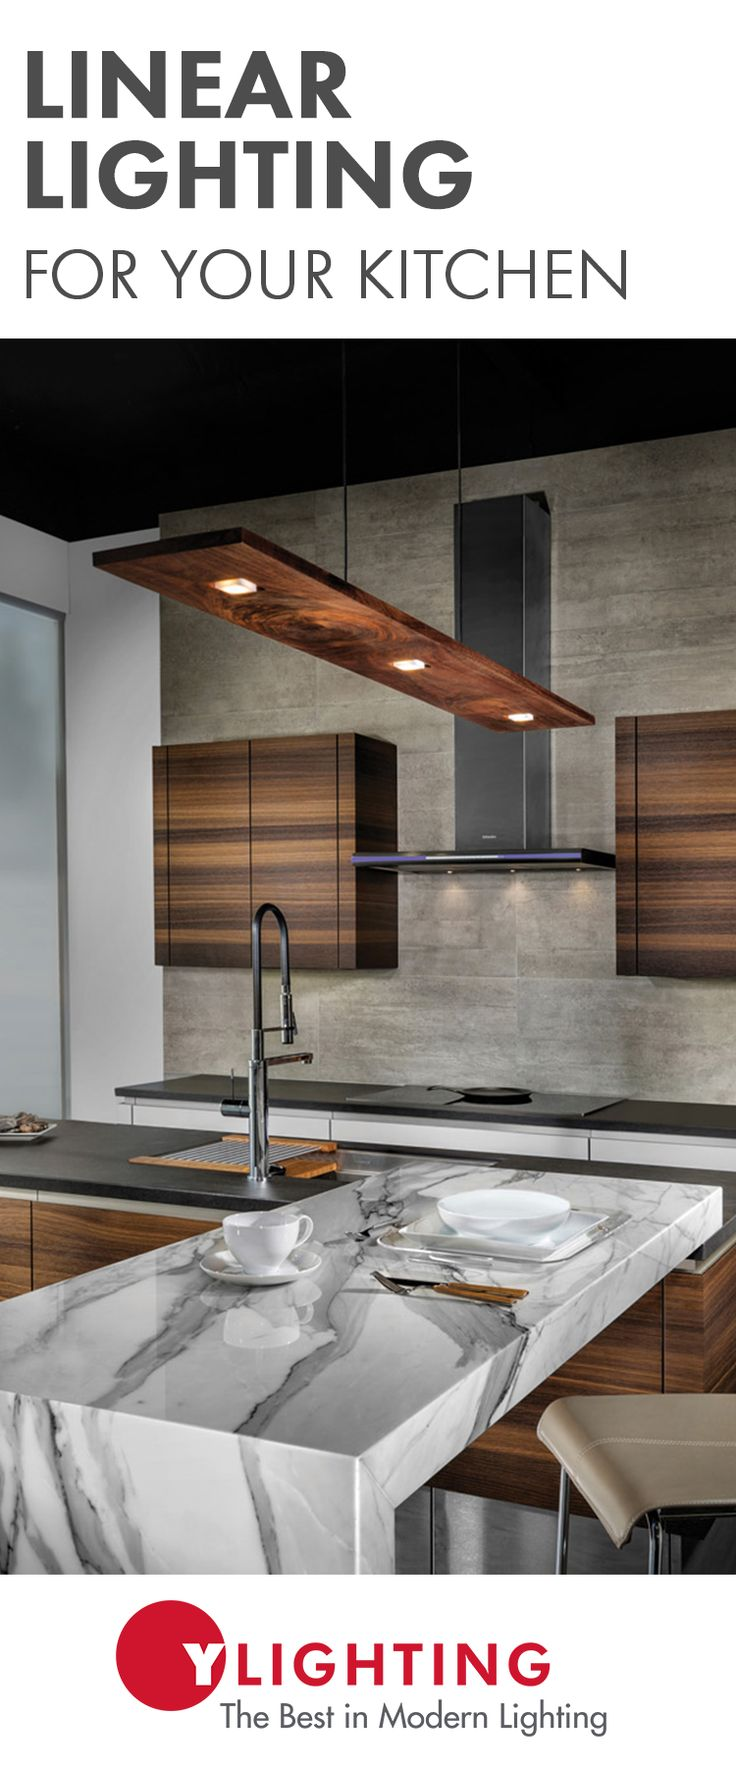 These modern linear lighting designs are bold enough to make a statement, while also providing form and function for all of your  kitchen tasks.